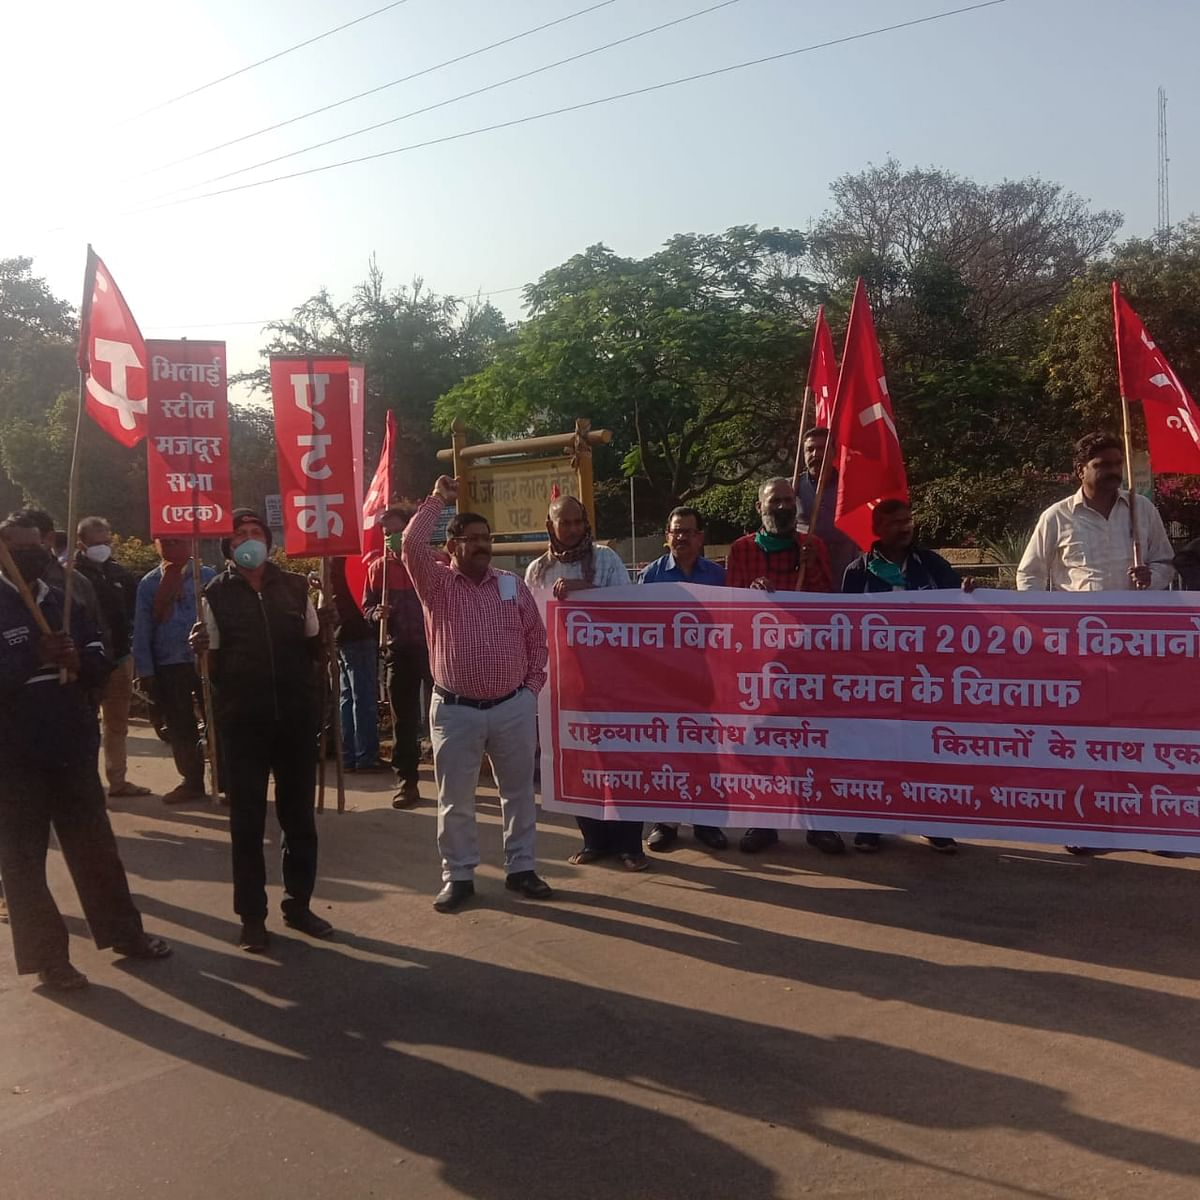 Bhilai: Left parties protest against agricultural laws and labor code, copies of torn bill as protest